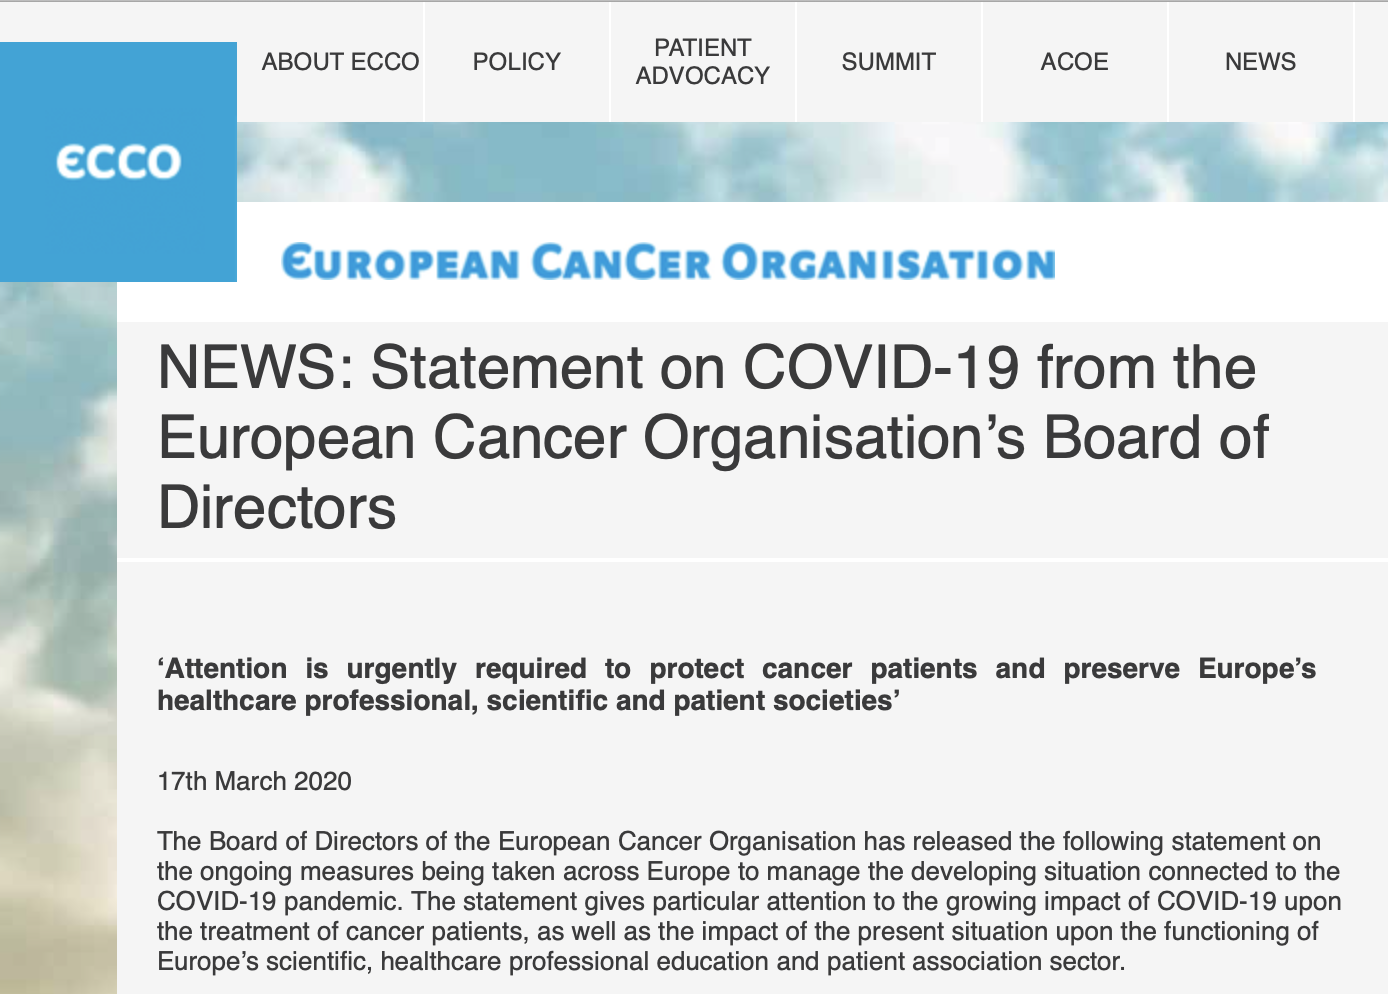 COVID-19: ECCO demands attention to protect cancer patients